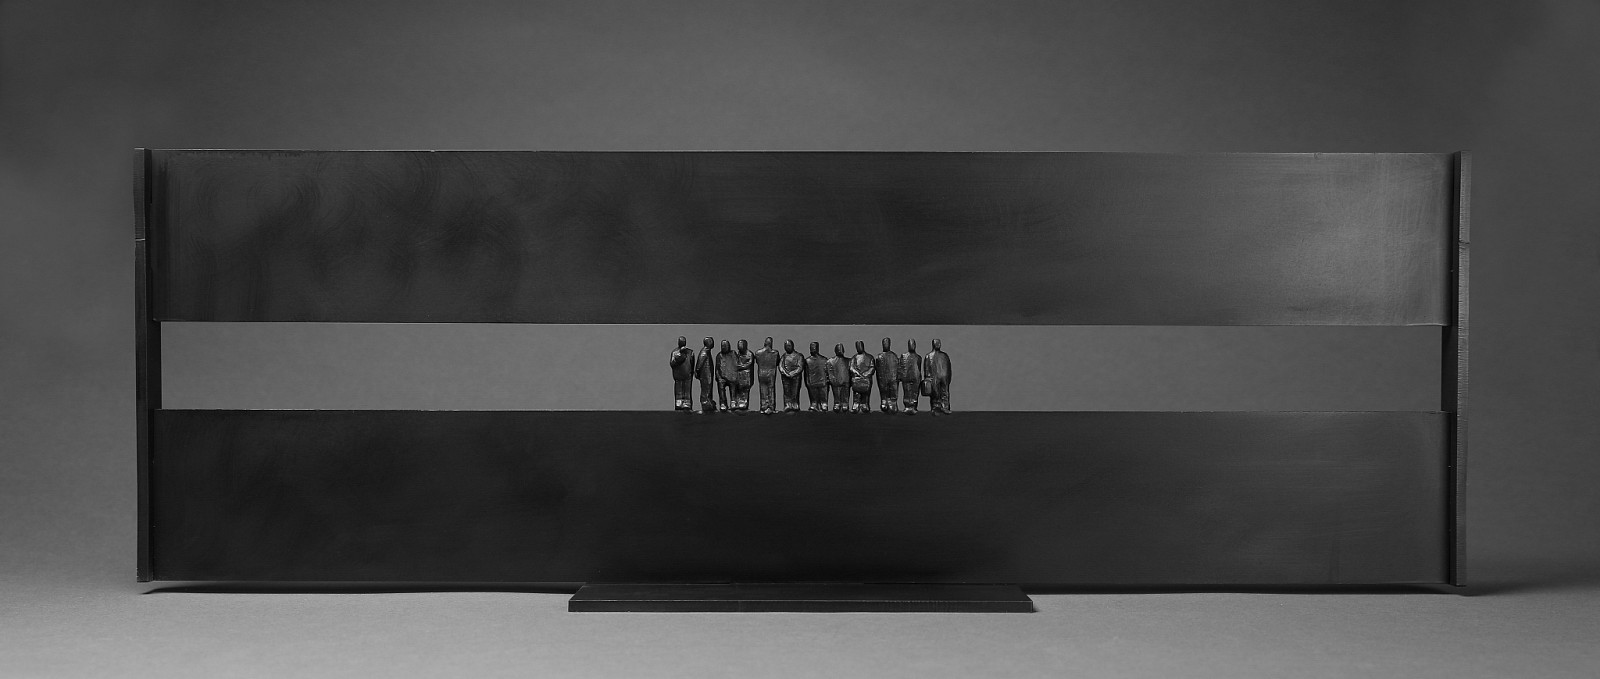 Jim Rennert ,   In Transit III, Edition of 9  ,  2018     bronze and steel ,  10 x 30 x 6 in. (25.4 x 76.2 x 15.2 cm)